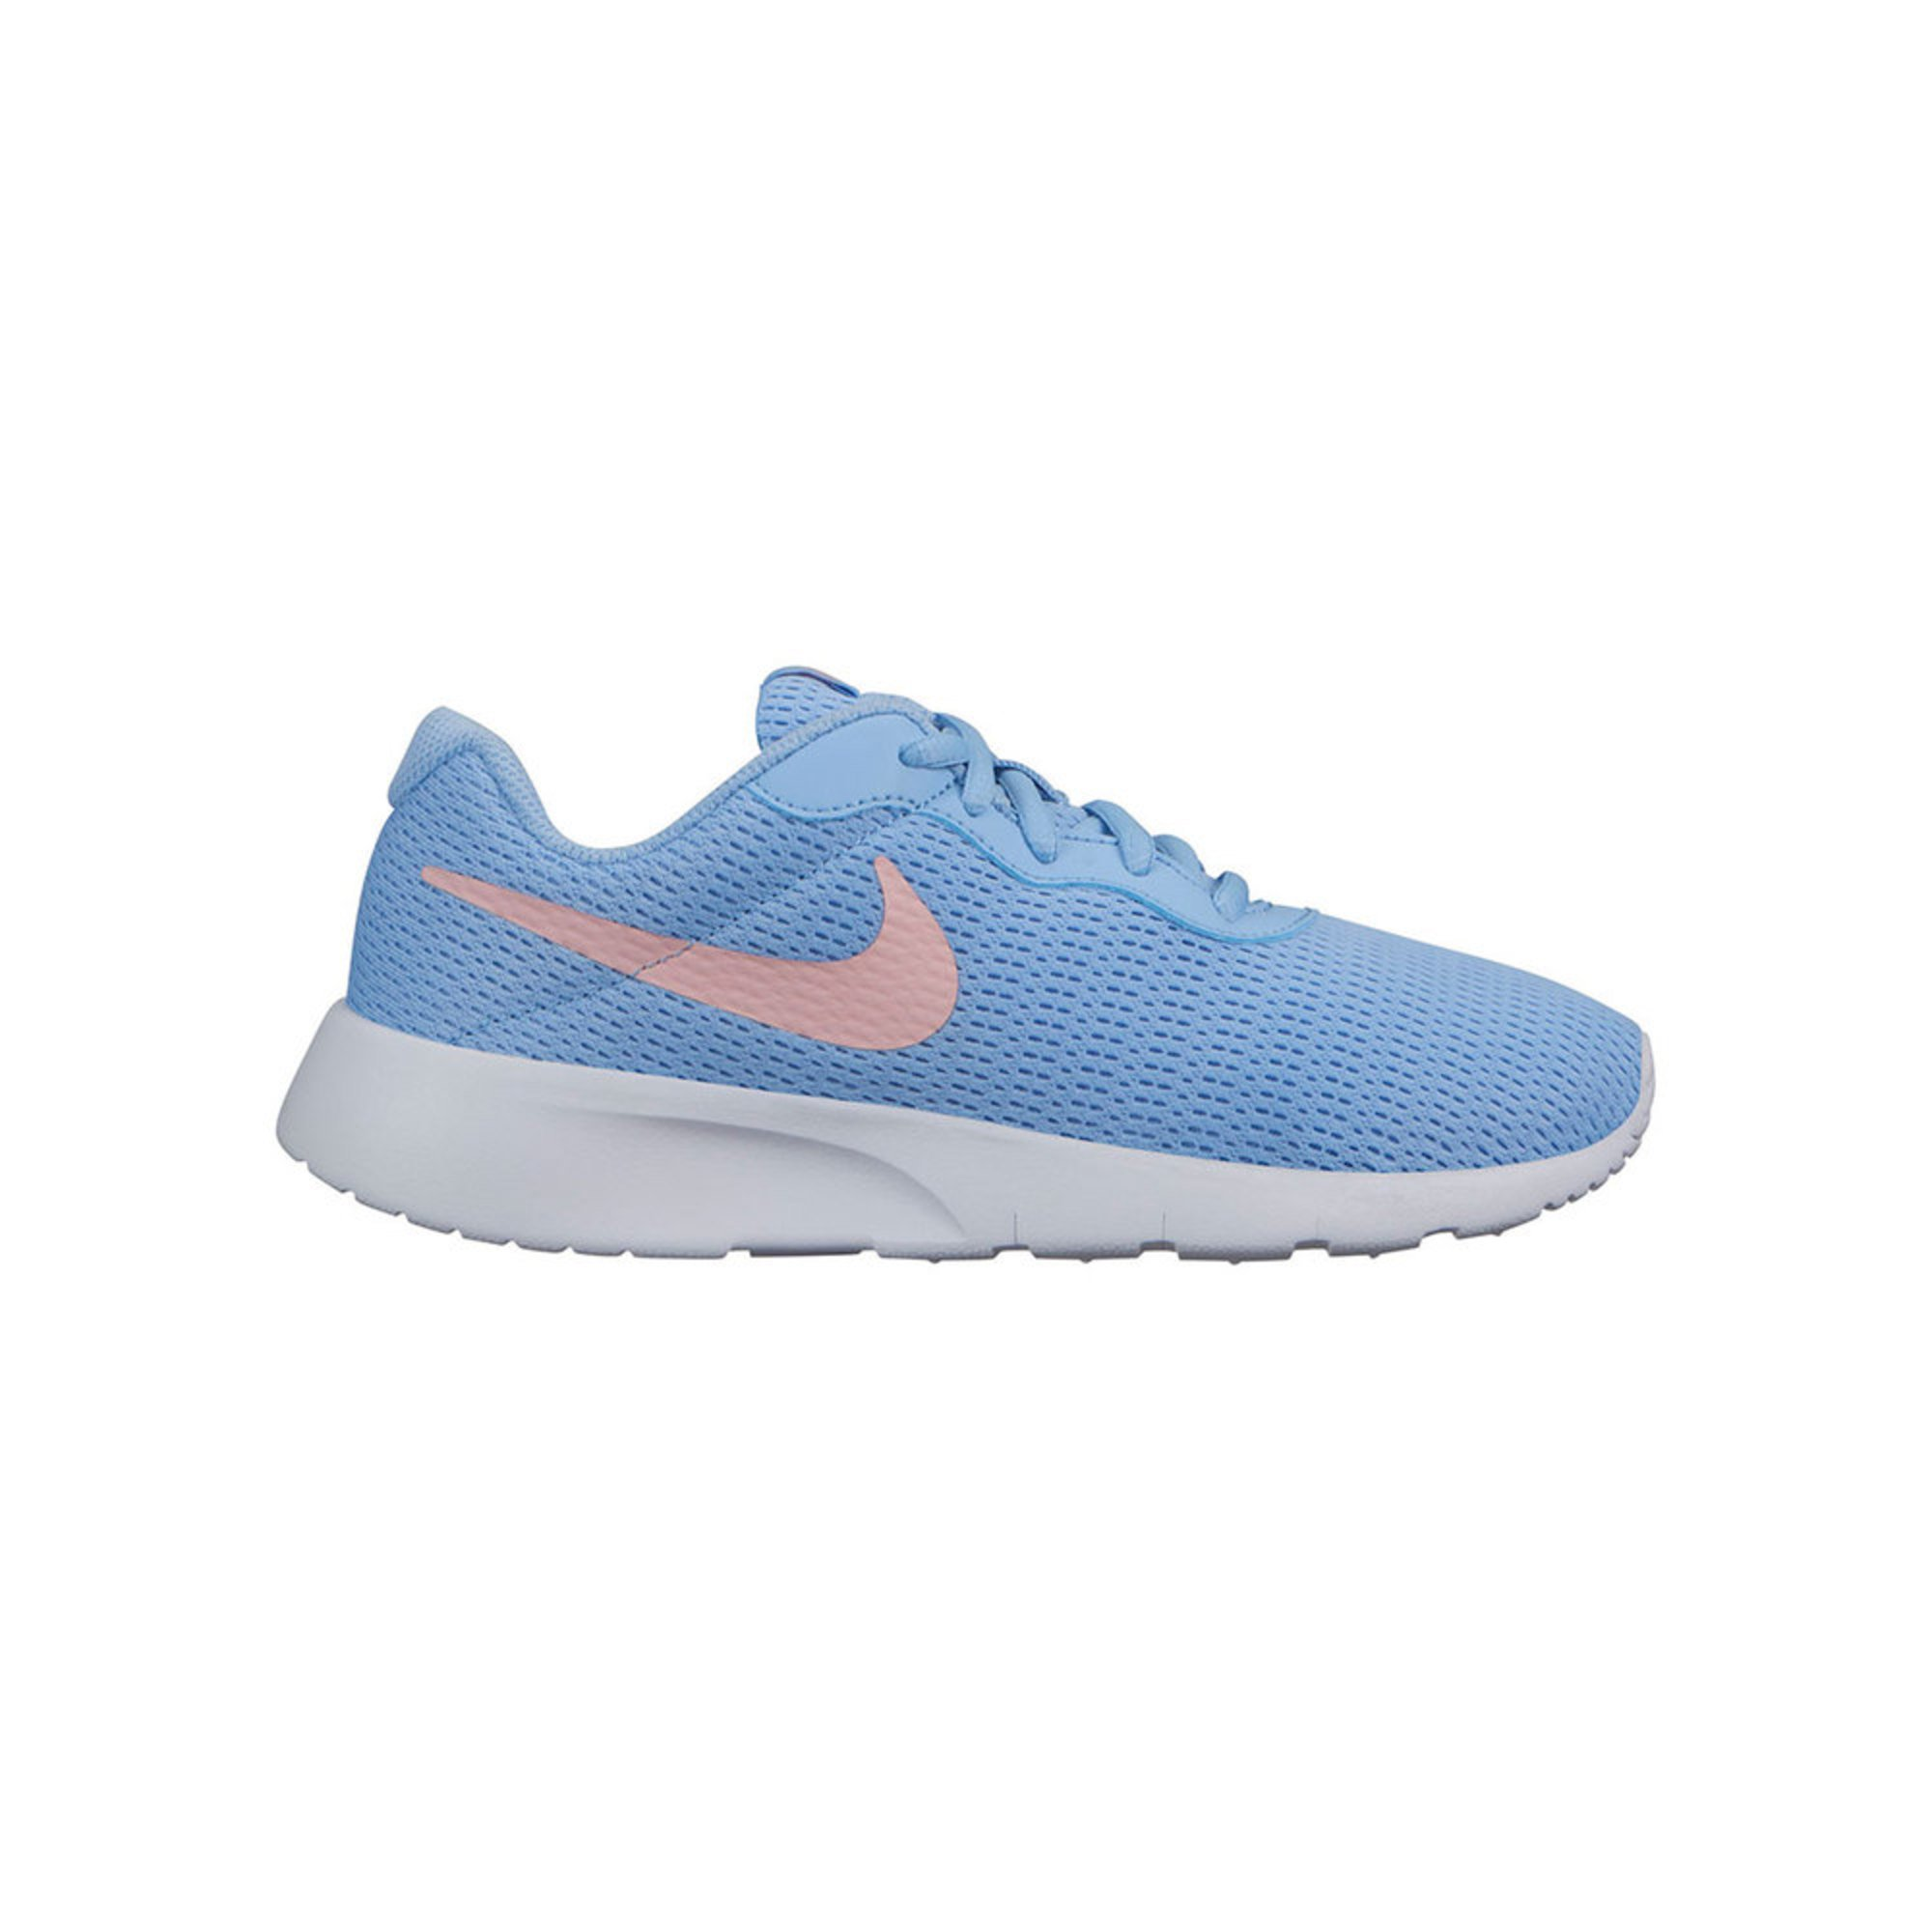 uk cheap sale best wholesaler release info on Nike Big Girl's Tanjun Gs Running Shoe | Girl's Shoes ...